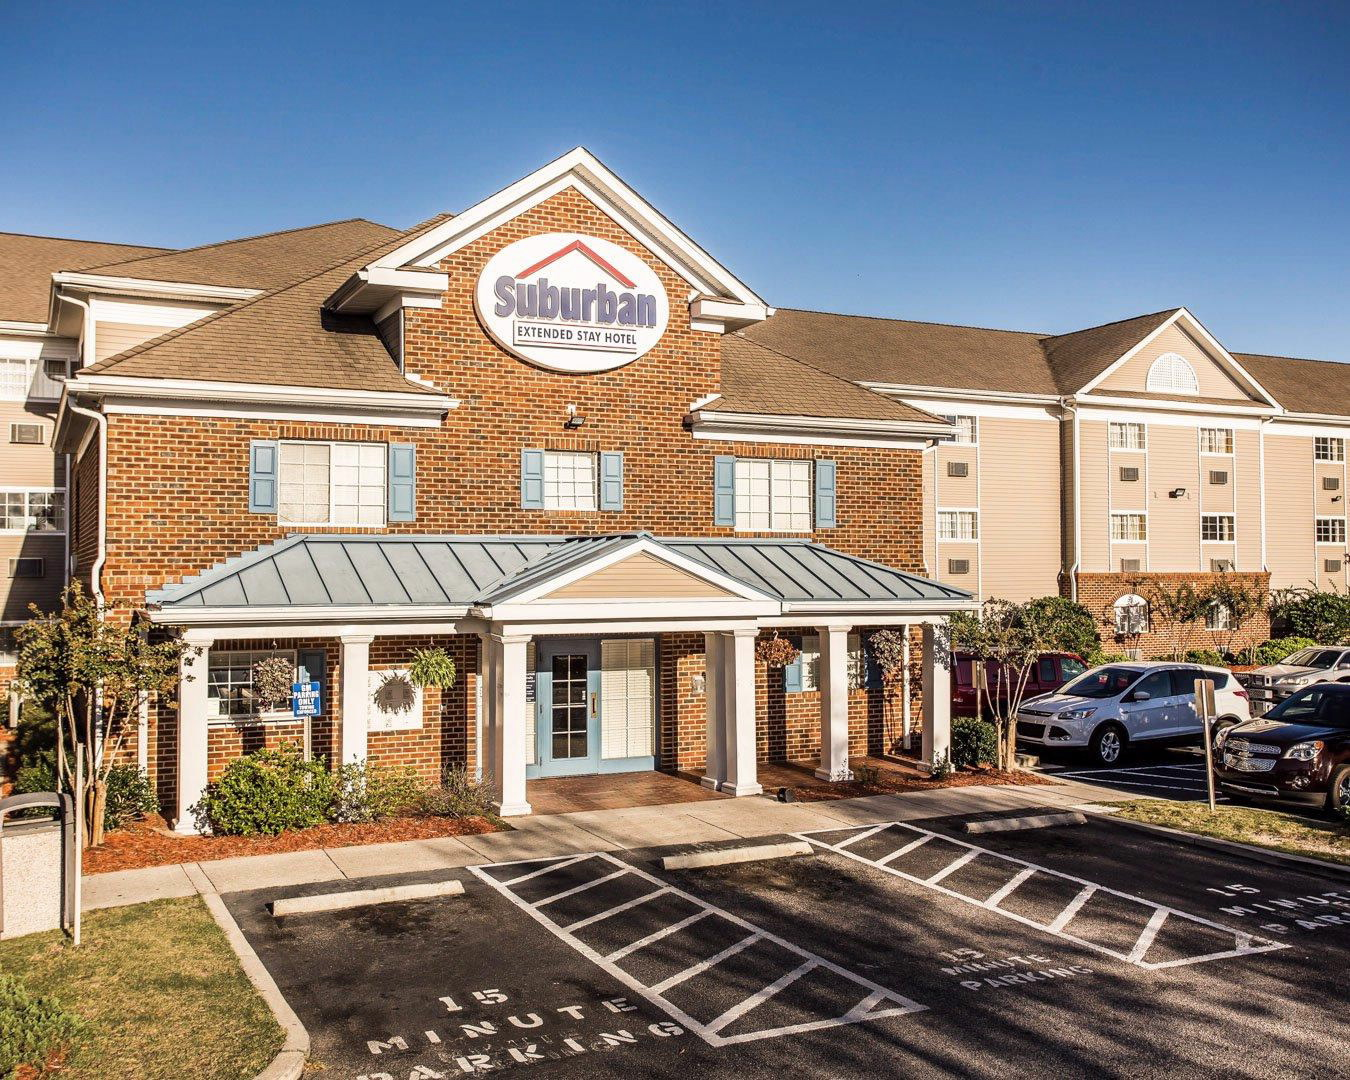 Whether you stay for a day, a week, or longer, Extended Stay America offers you the best value with great nightly rates and discounts for extended stays. Today's Extended Stay America Top Offers: Up to 40% Off Night Stay at Participating Hotels.